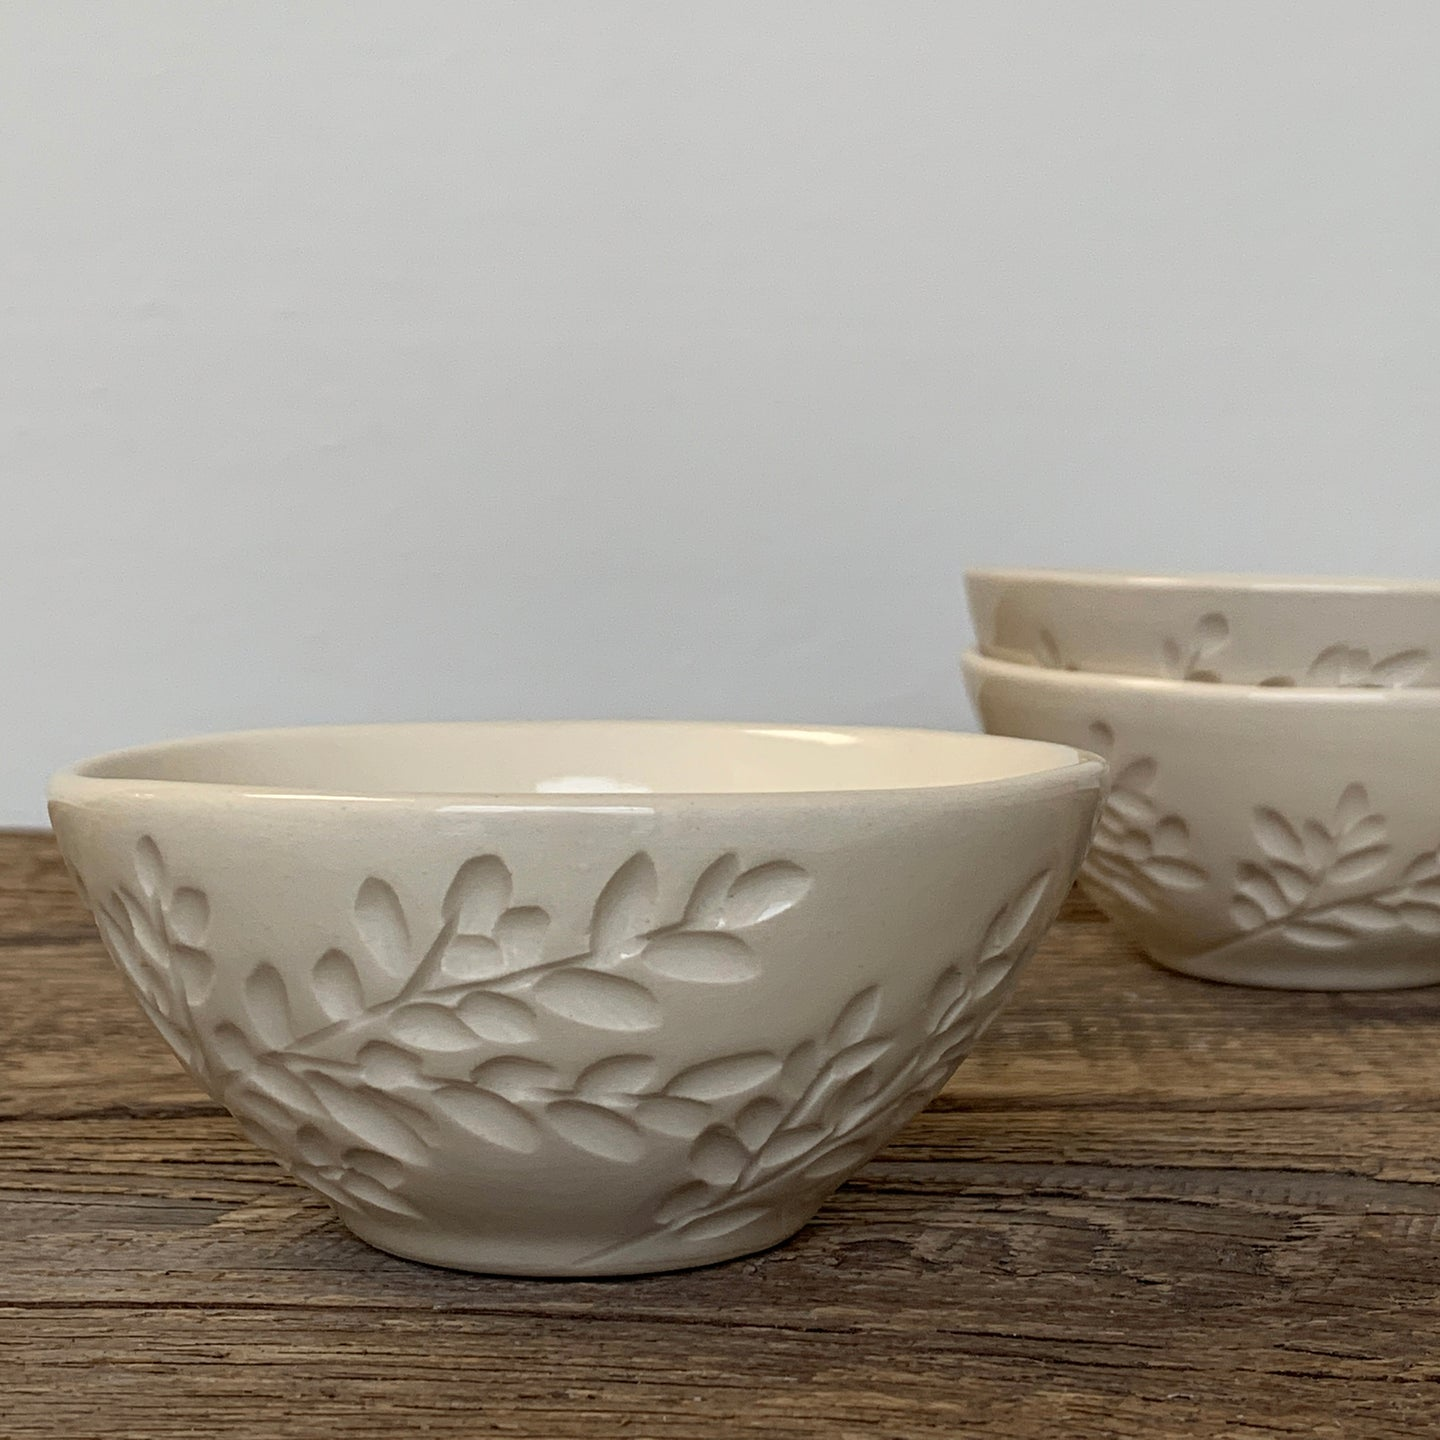 IVORY SMALL EVERYDAY BOWLS WITH BRANCHES